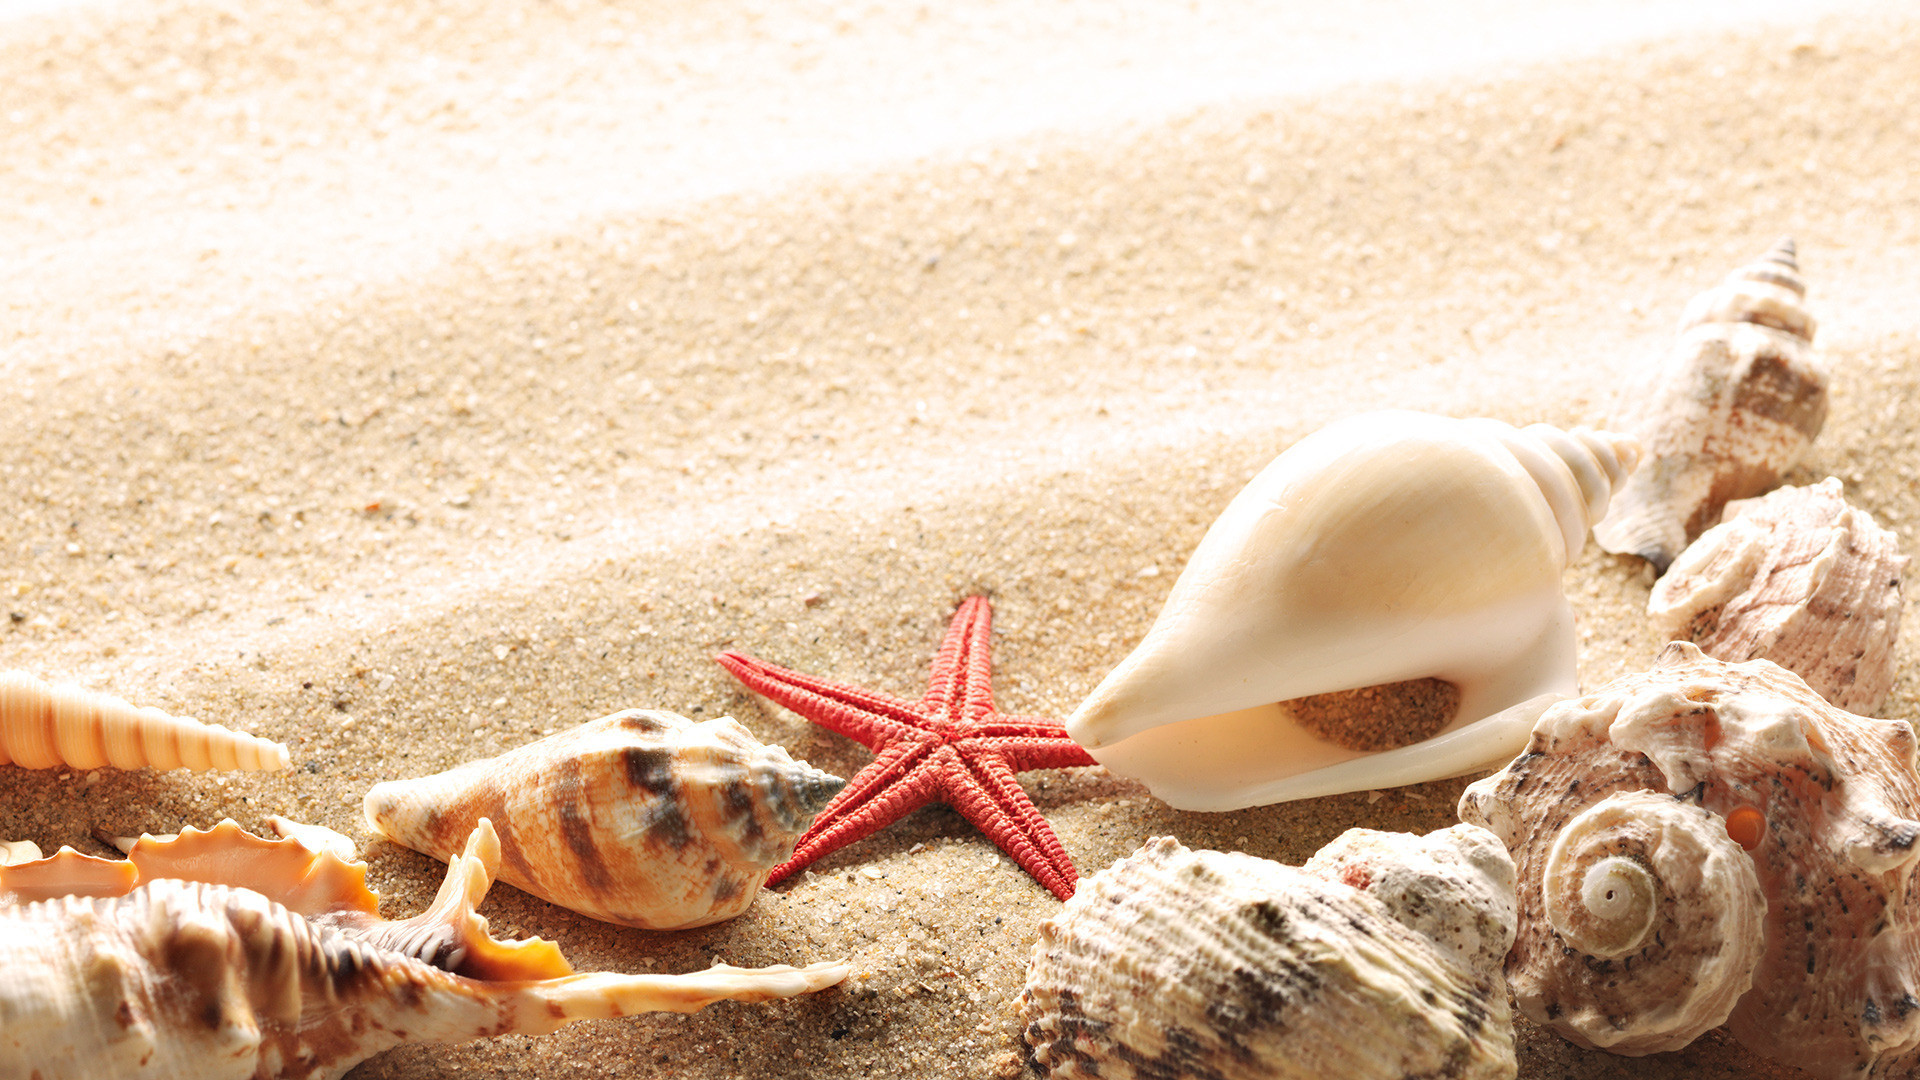 Shells-on-the-golden-sand-from-the-beach-Summers-Seasons-download-beautif-wallpaper-wpc5808699